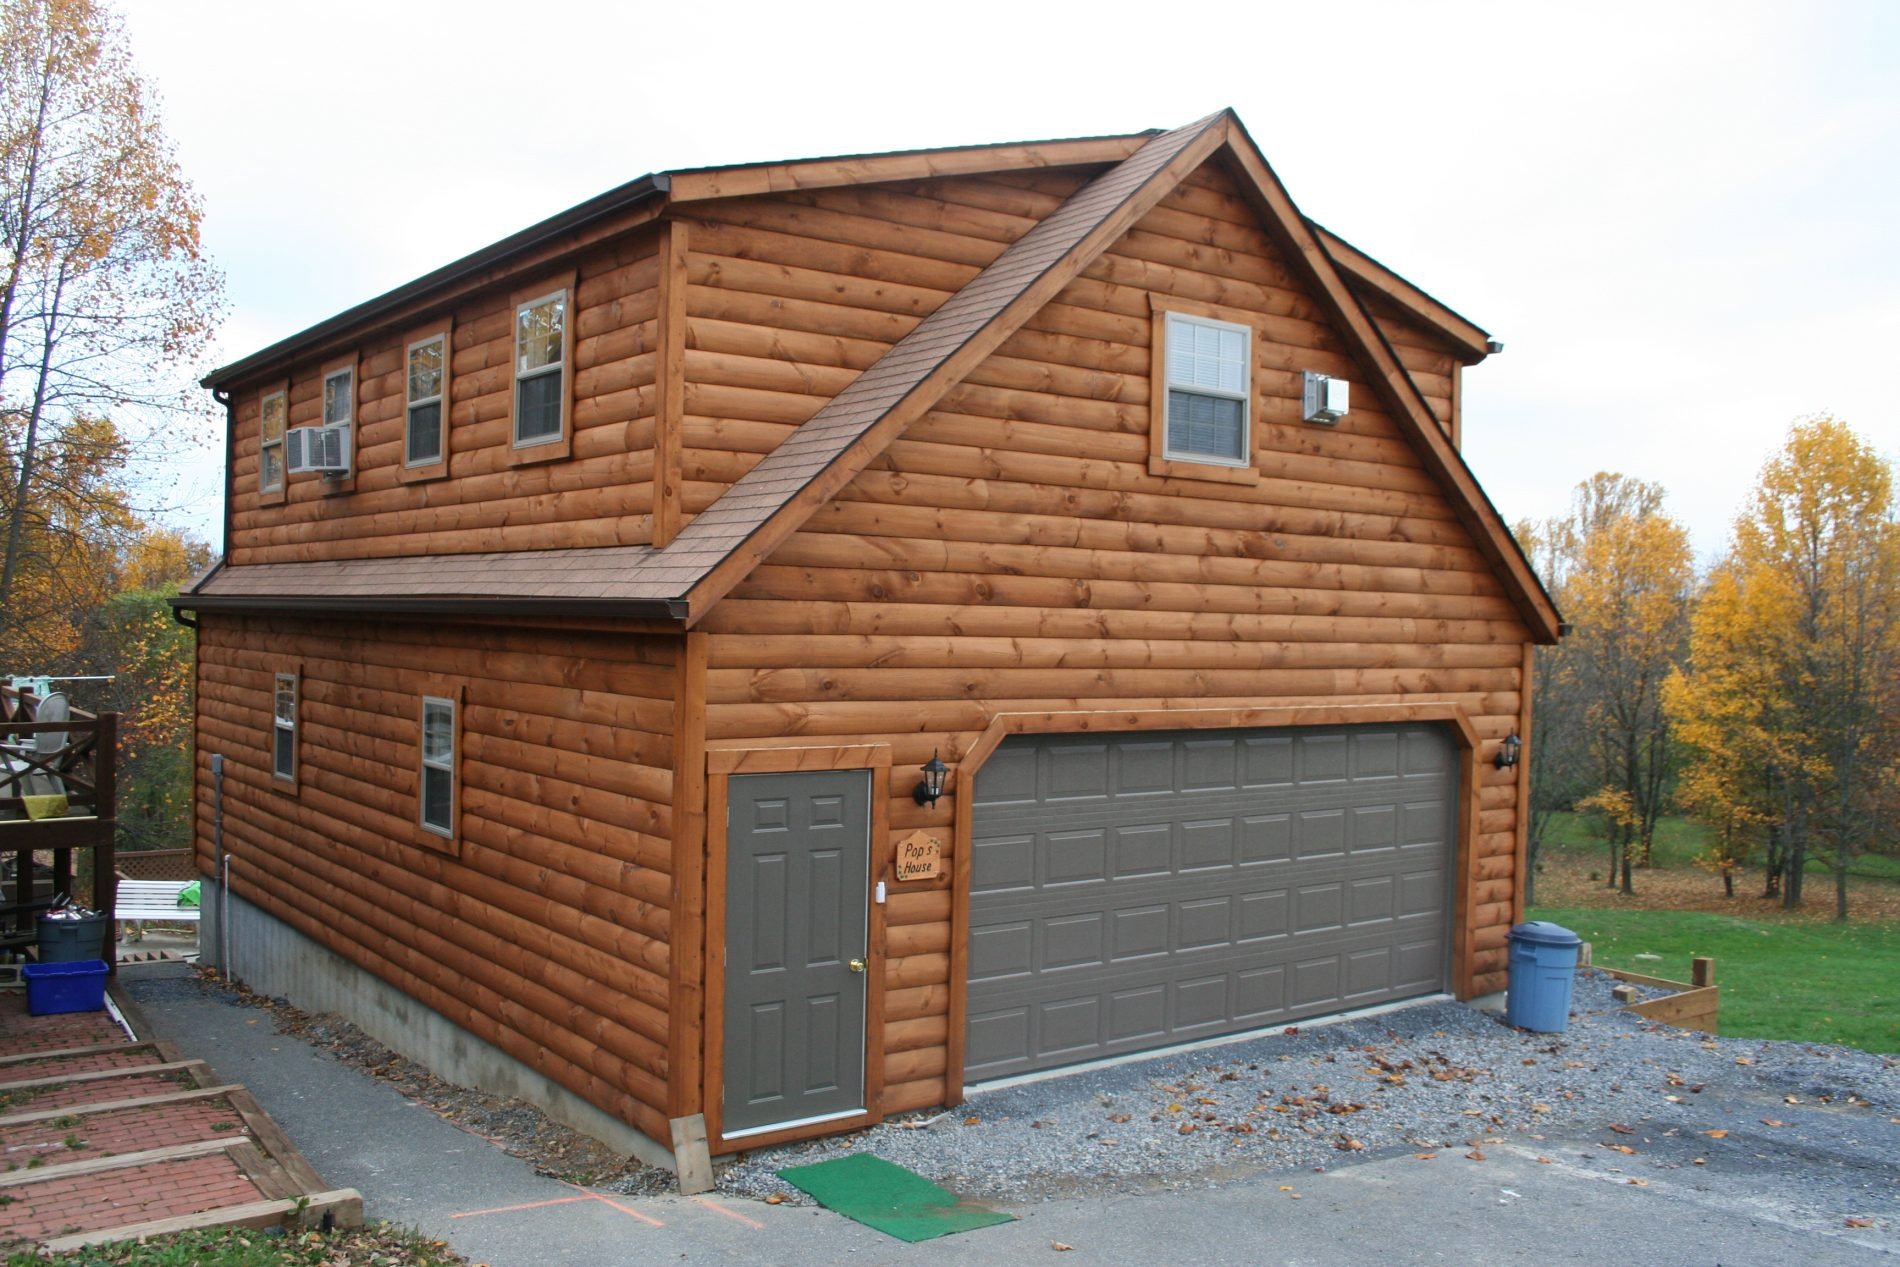 Custom garage builders prefab garages for sale zook cabins for Log cabin house plans with garage